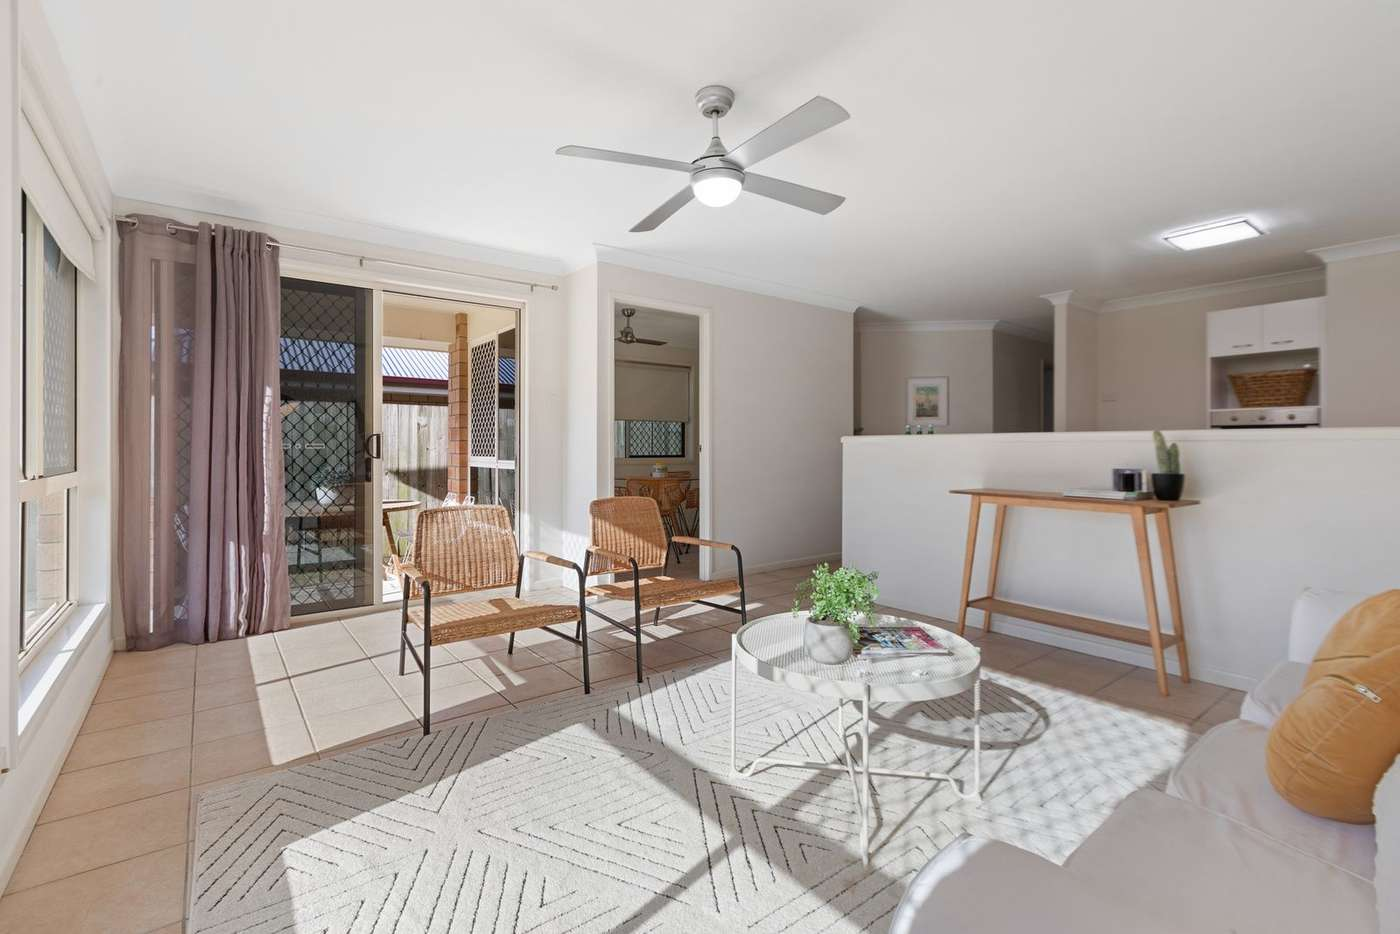 Fifth view of Homely house listing, 98 Orange Grove Road, Coopers Plains QLD 4108